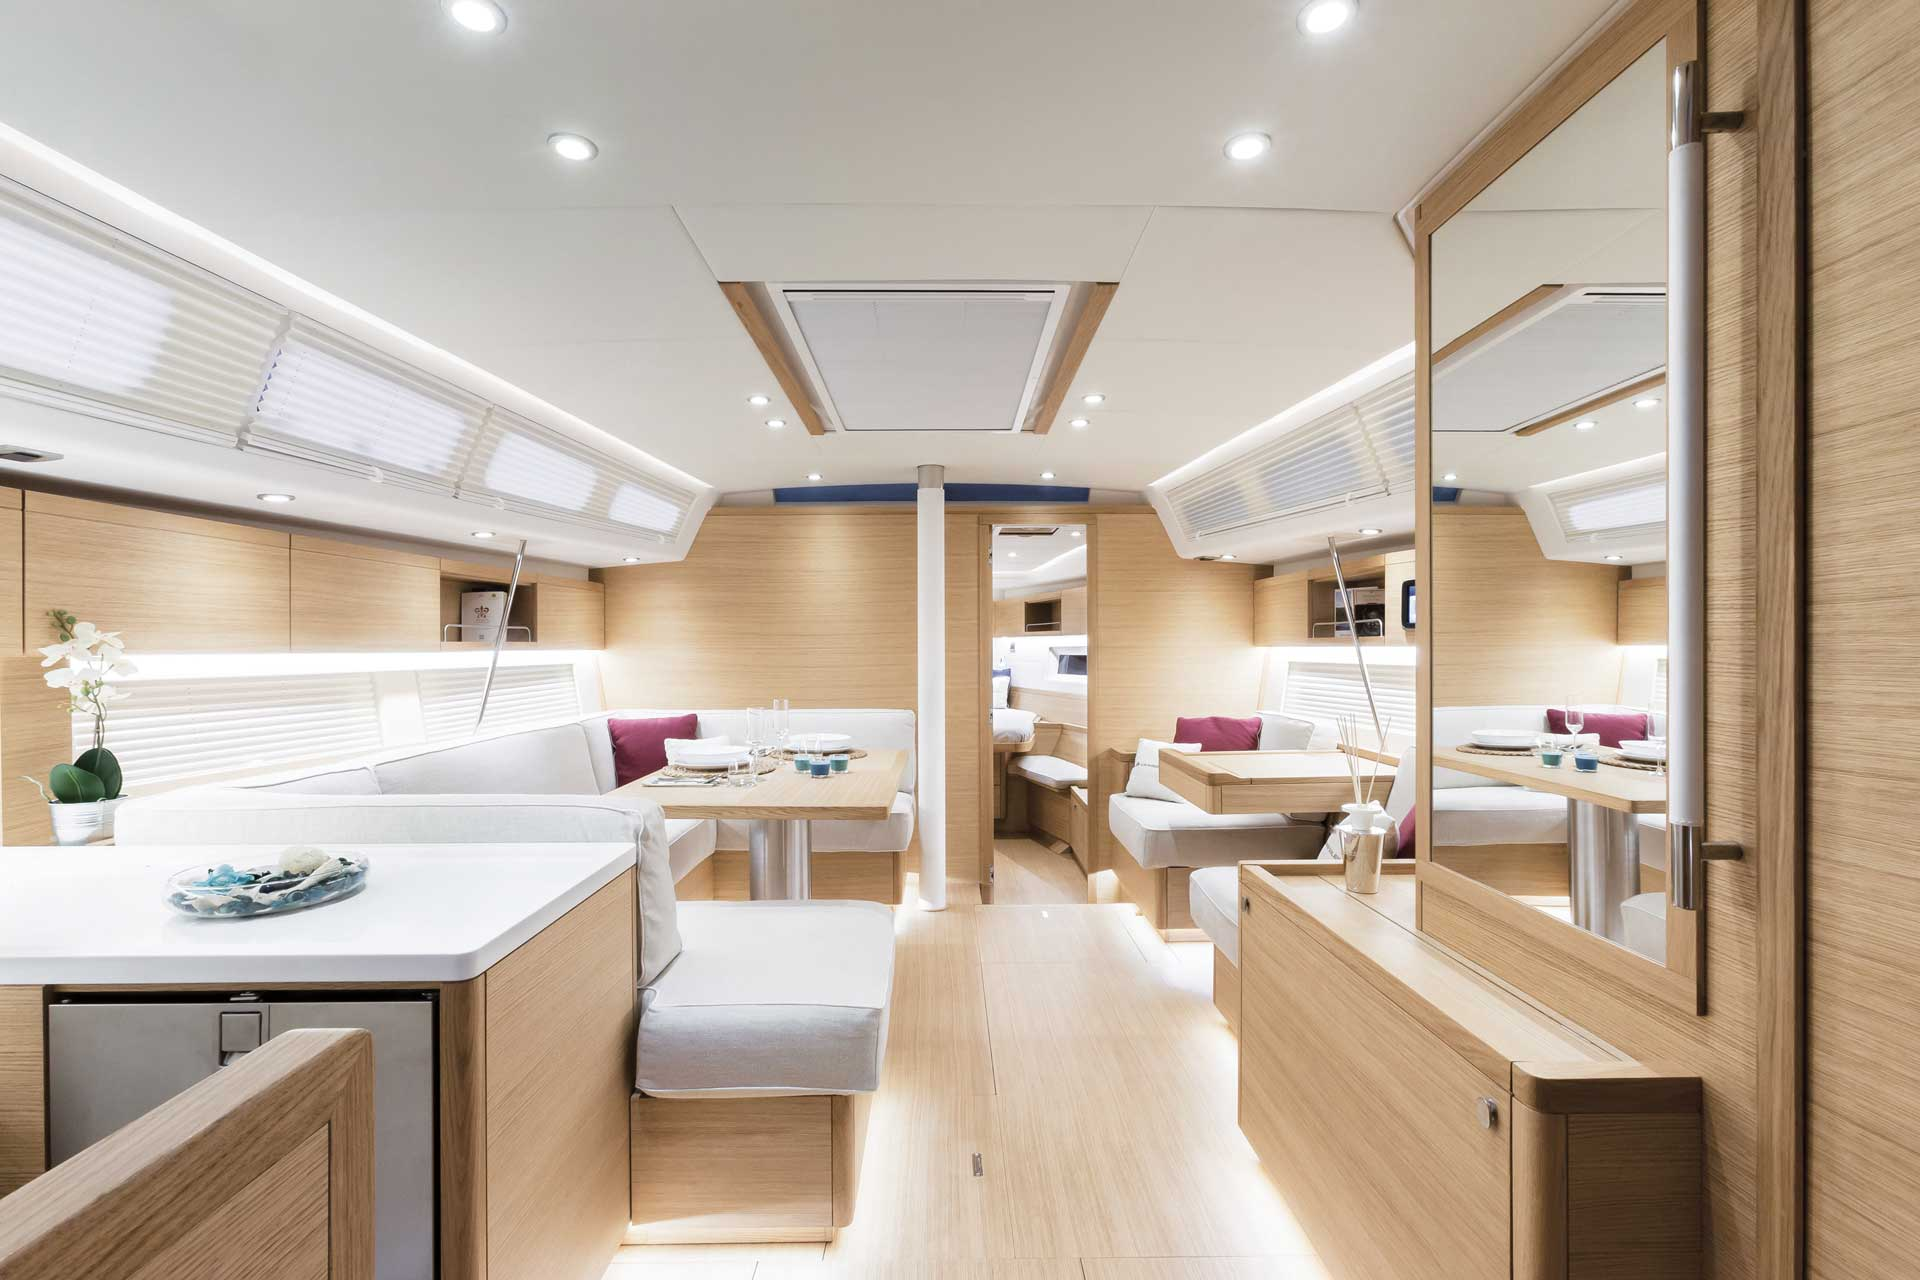 Grand_Soleil-Long_Cruise_46-California_Yacht_Imports-interior-4